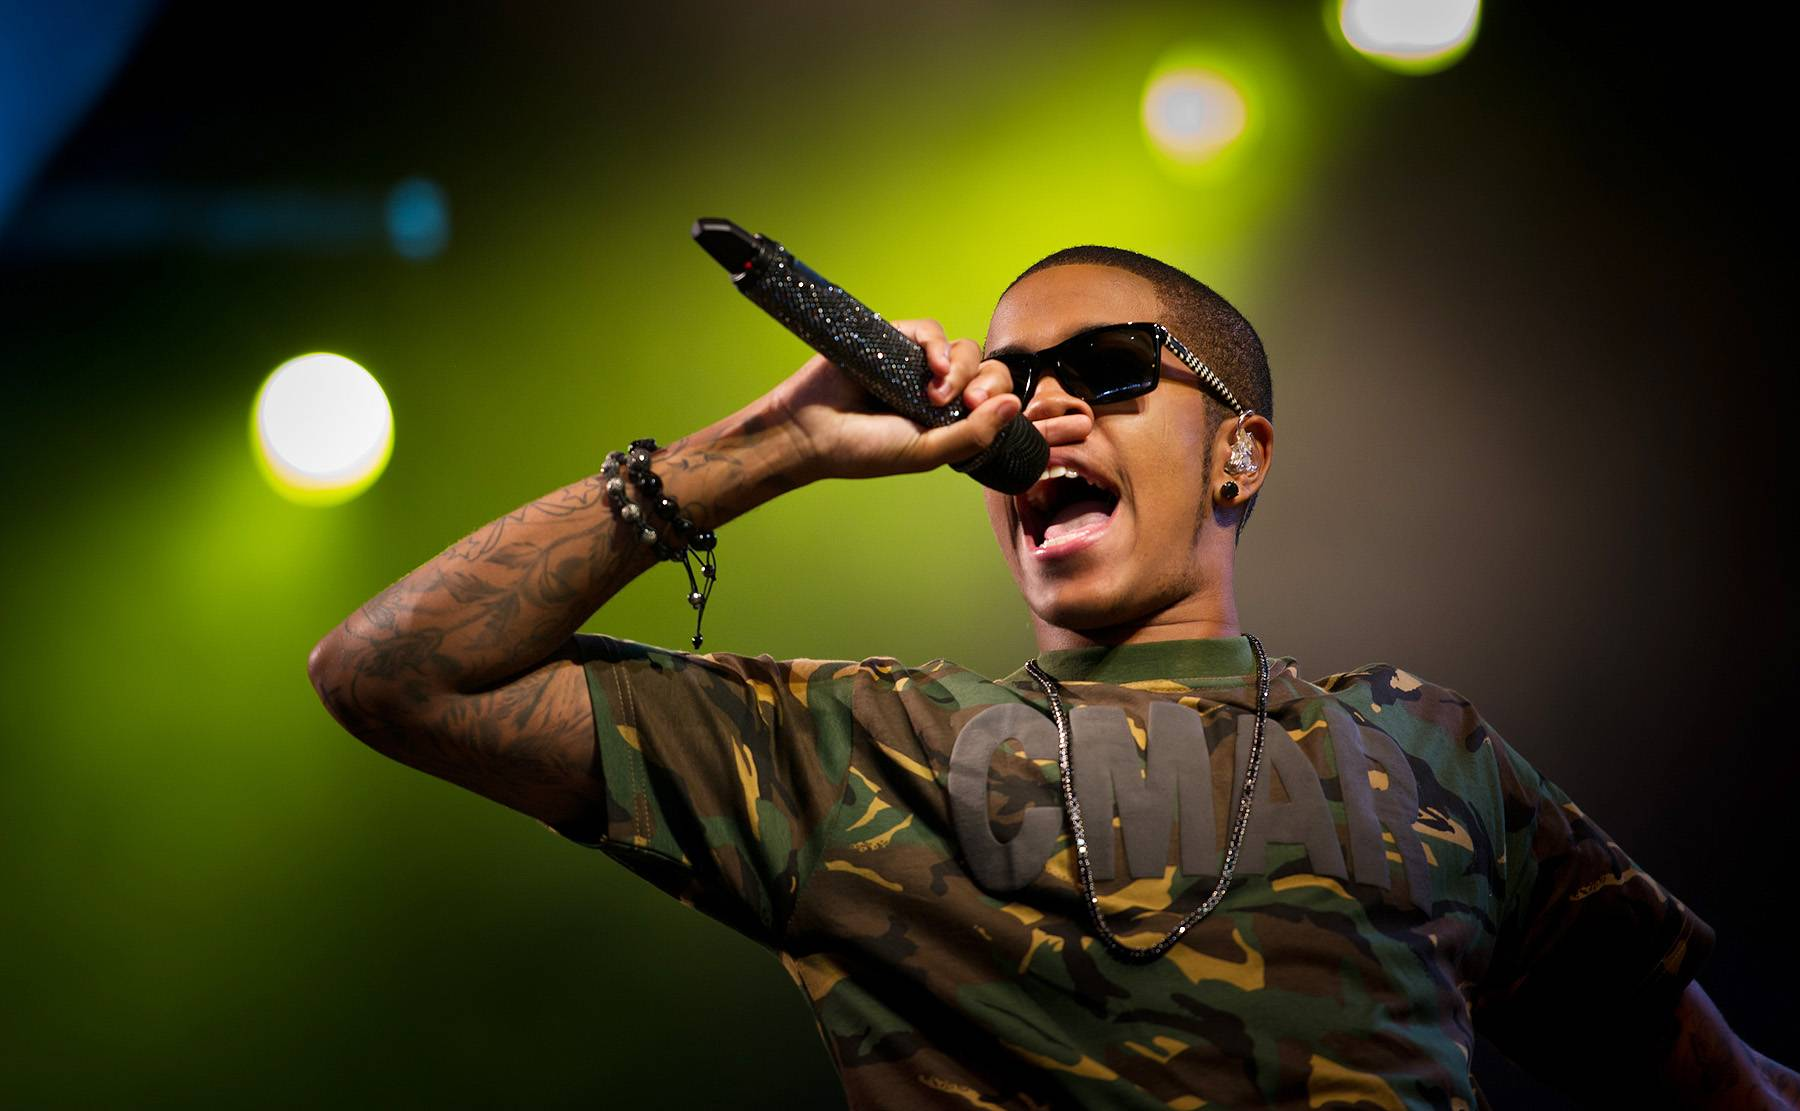 Chipmunk - Just in case you didn't know, Chipmunk has collaborated with Chris Brown and Trey Songz and he's getting ready to blow up, so check him out and get on it!(Photo: Ian Gavan/Getty Images)